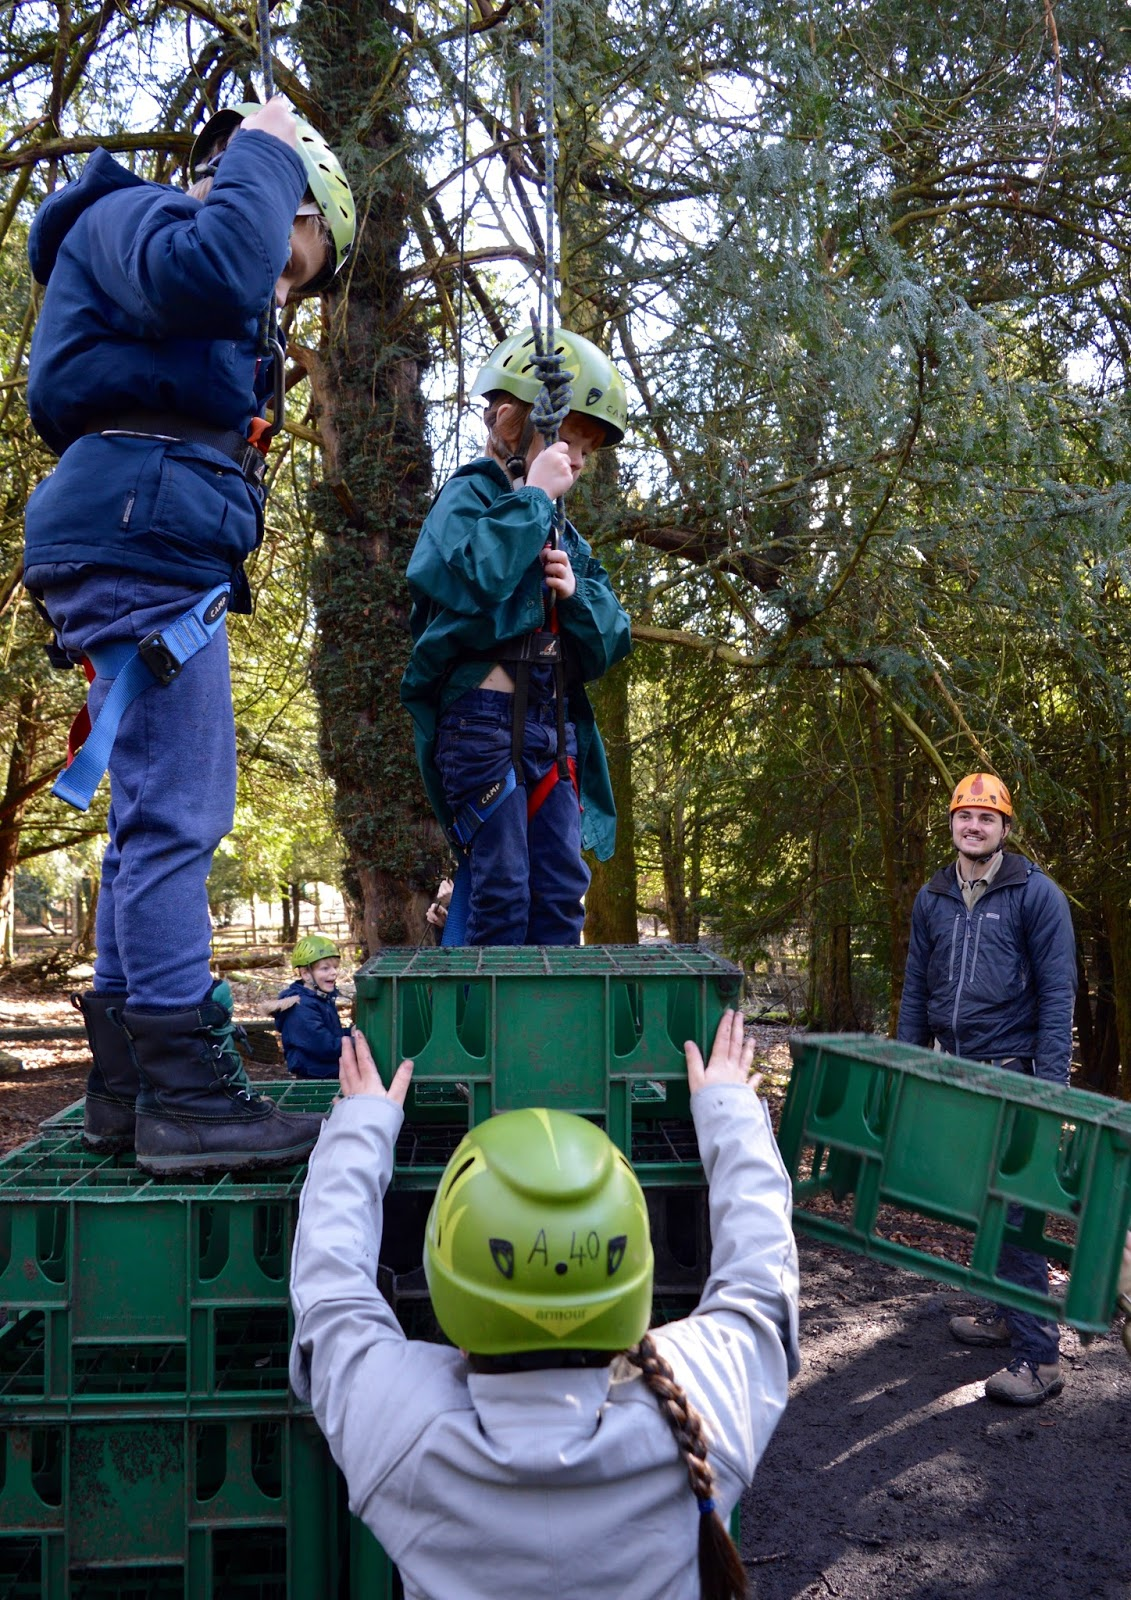 Beamish Wild | School Holiday Club & Activities in County Durham | North East England - crate stack climbing